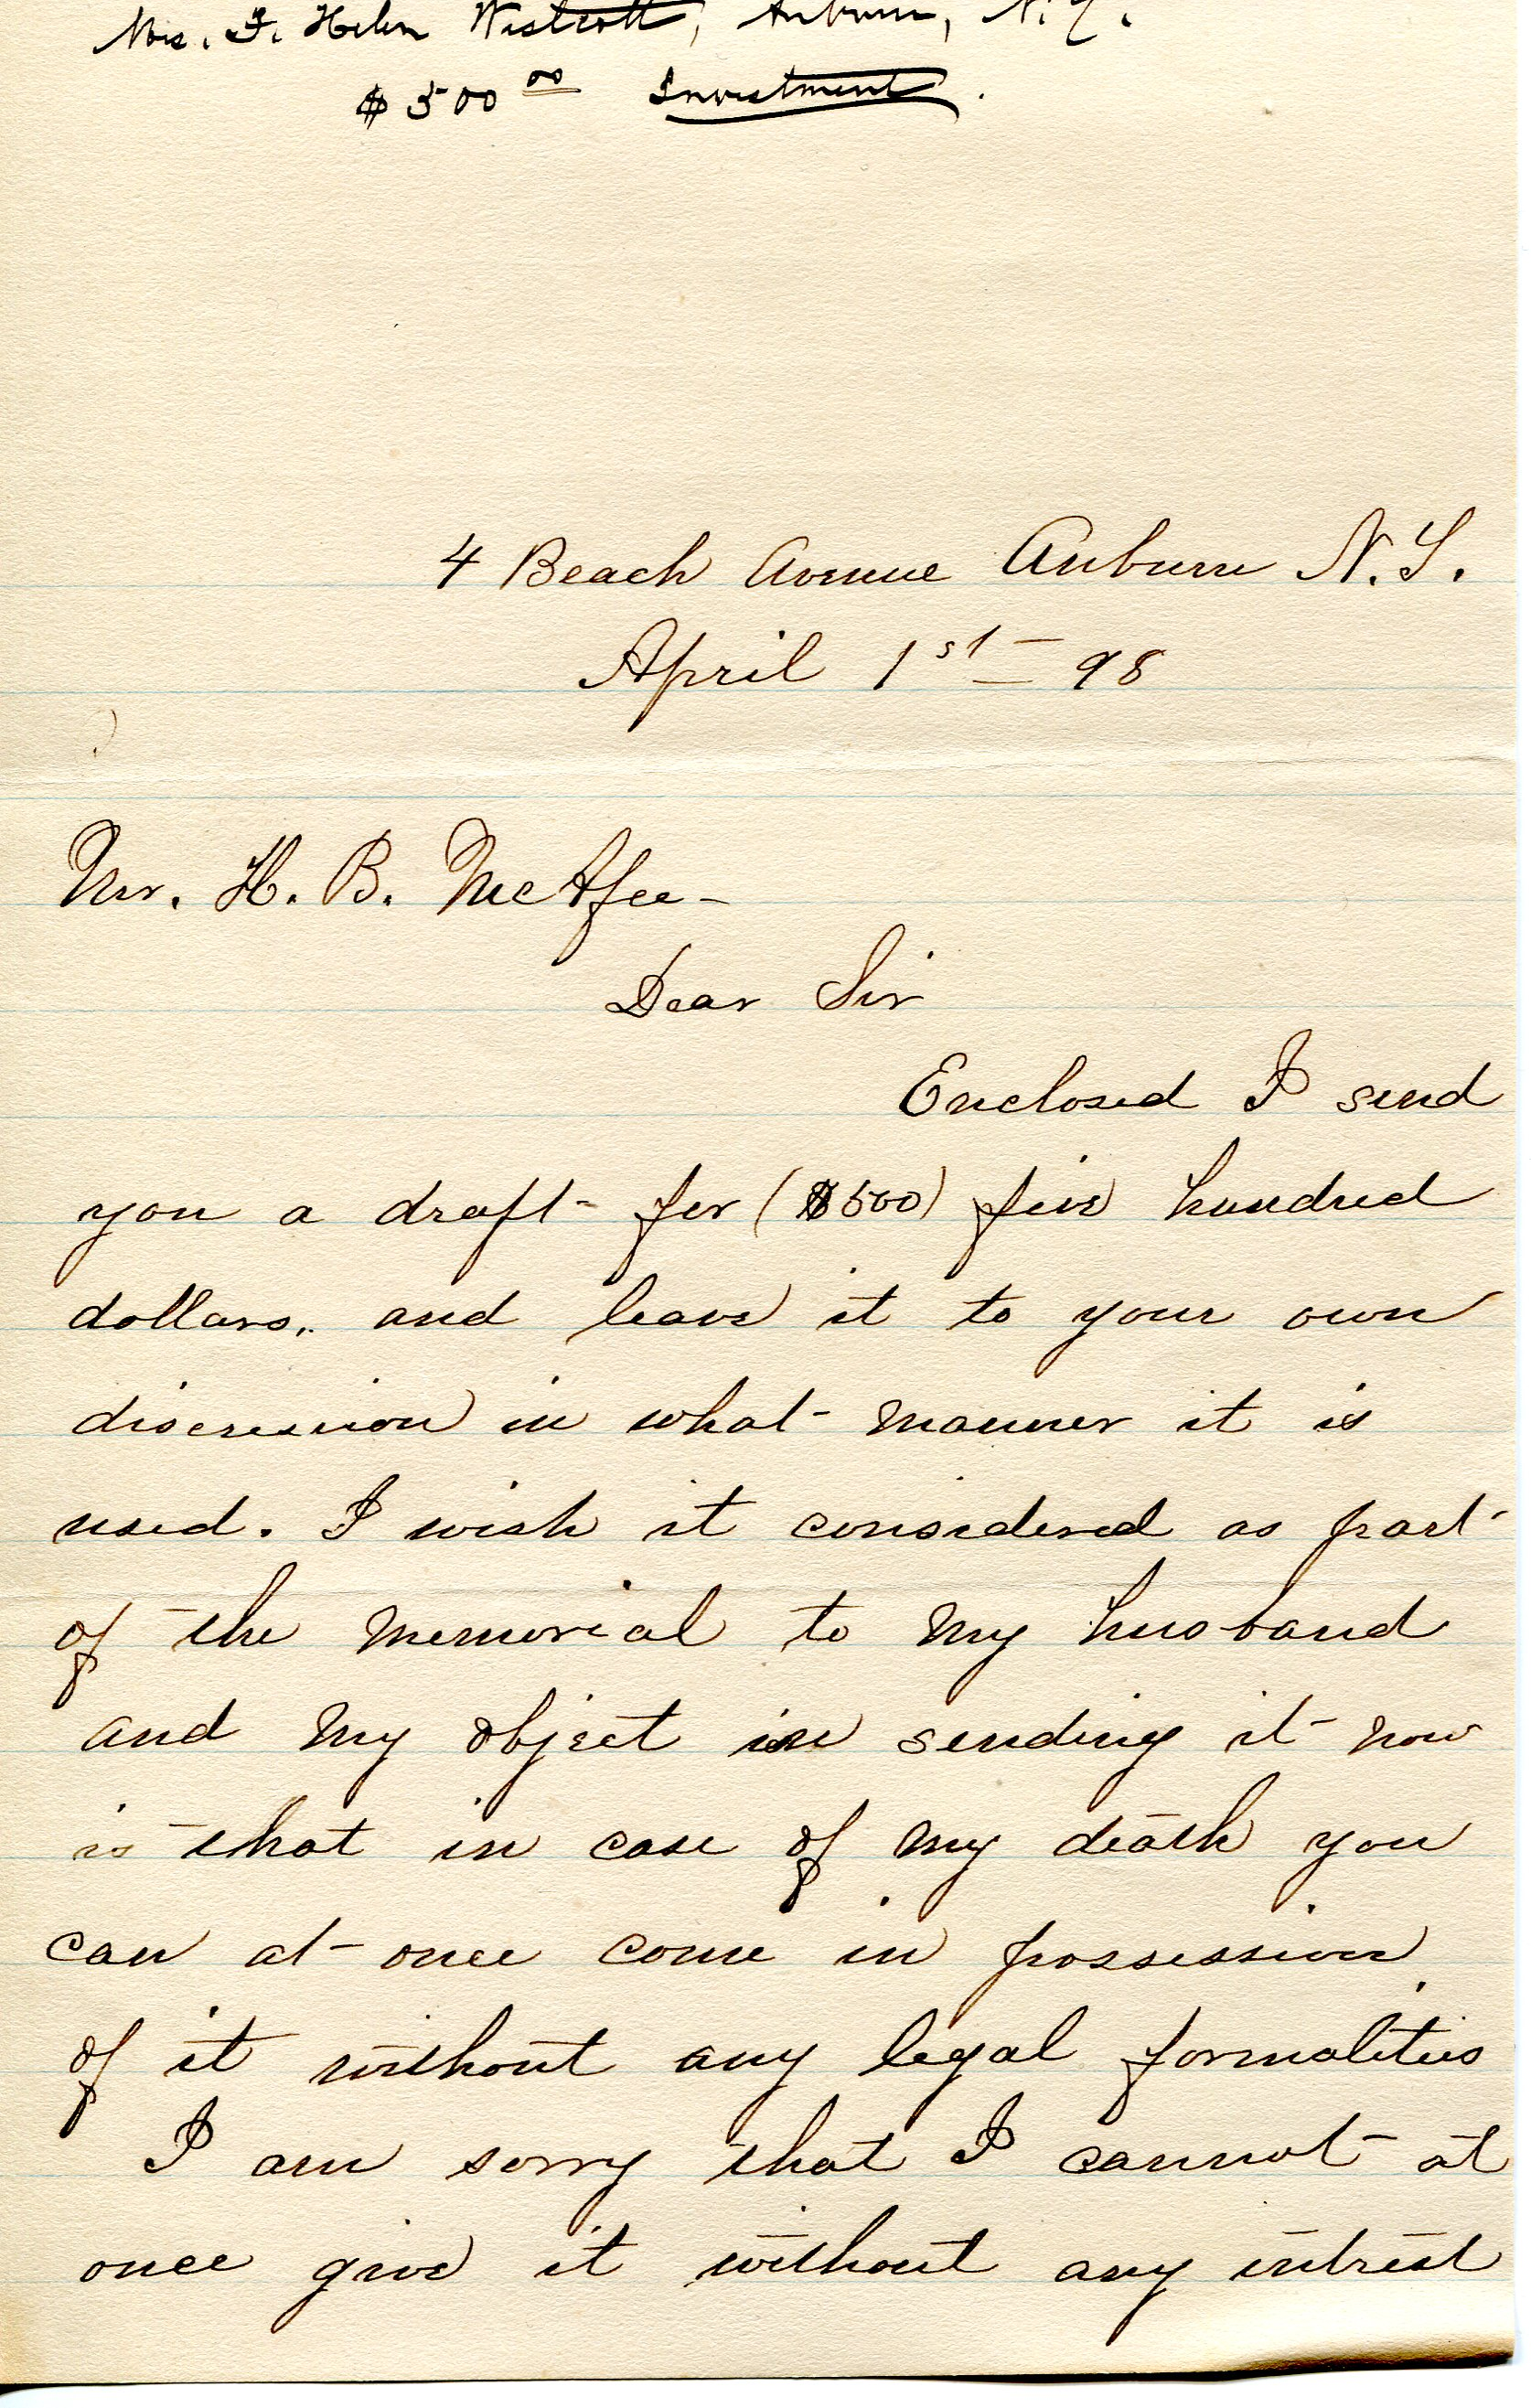 Page one of a letter from Helen Westcott to H. B. McAfee regarding the money she's sending and her thankfulness for Park's work. April 1, 1898